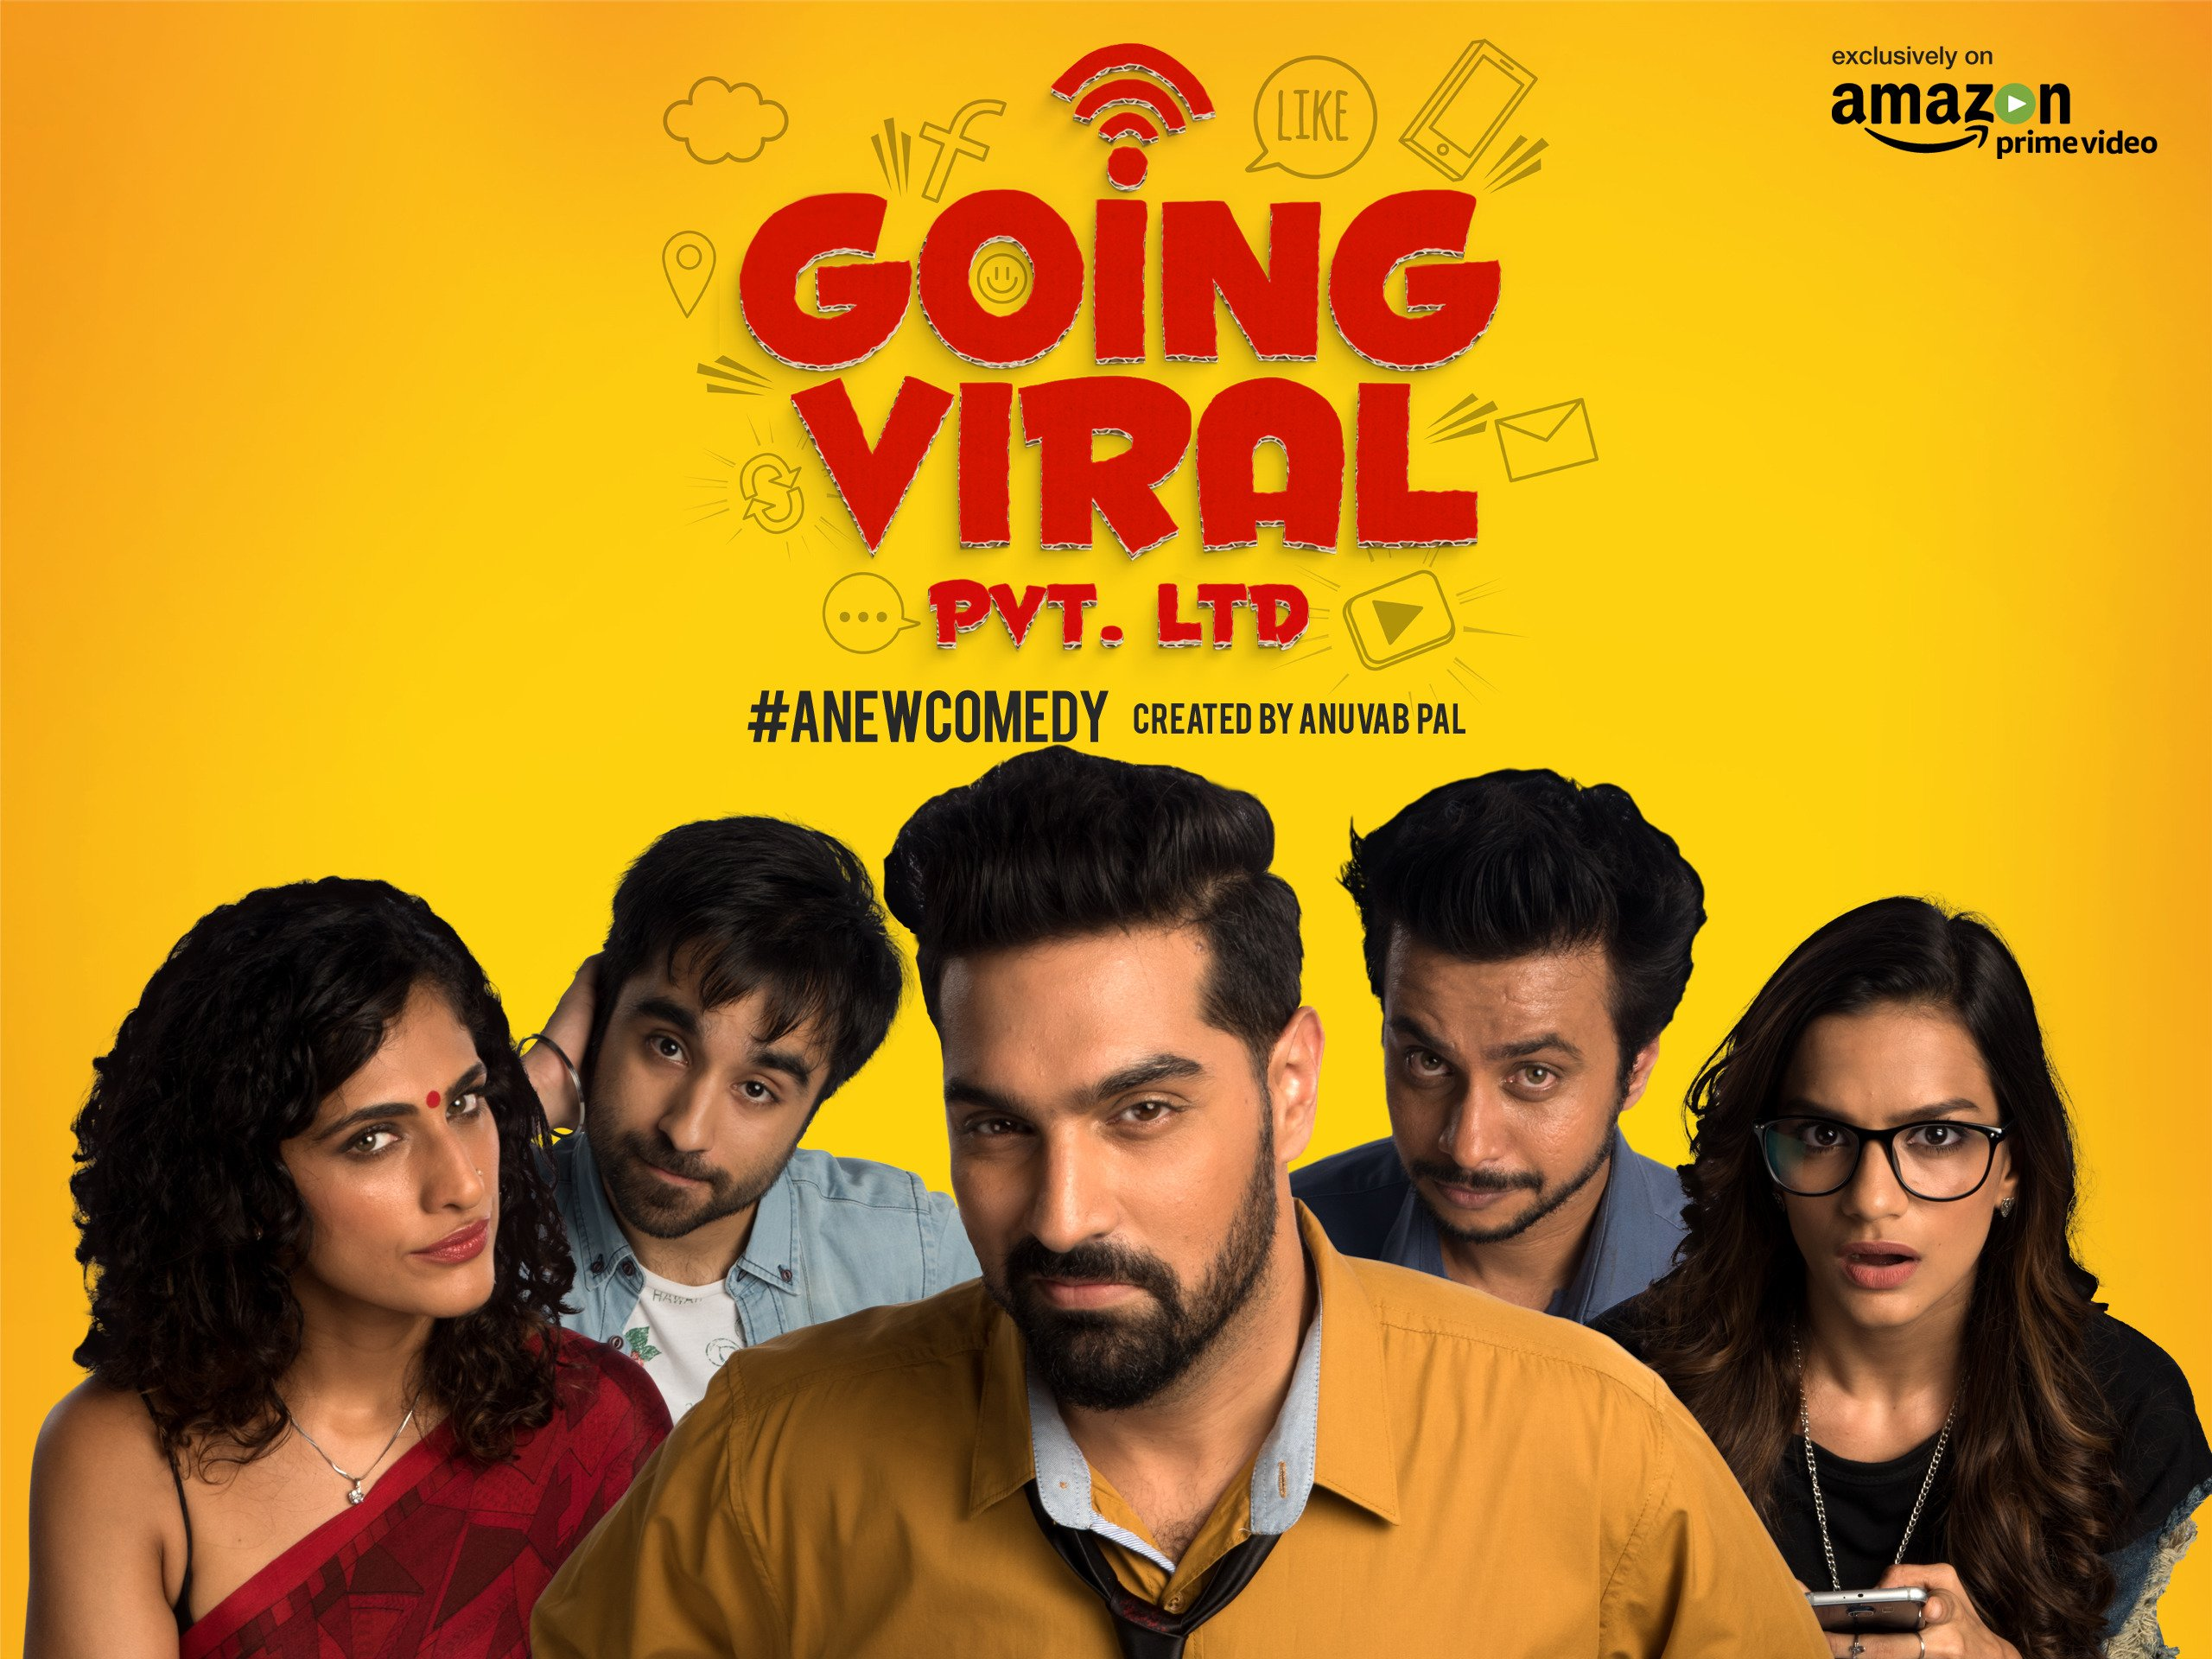 Going Viral Pvt. Ltd. - Season 1 on Amazon Prime Video UK